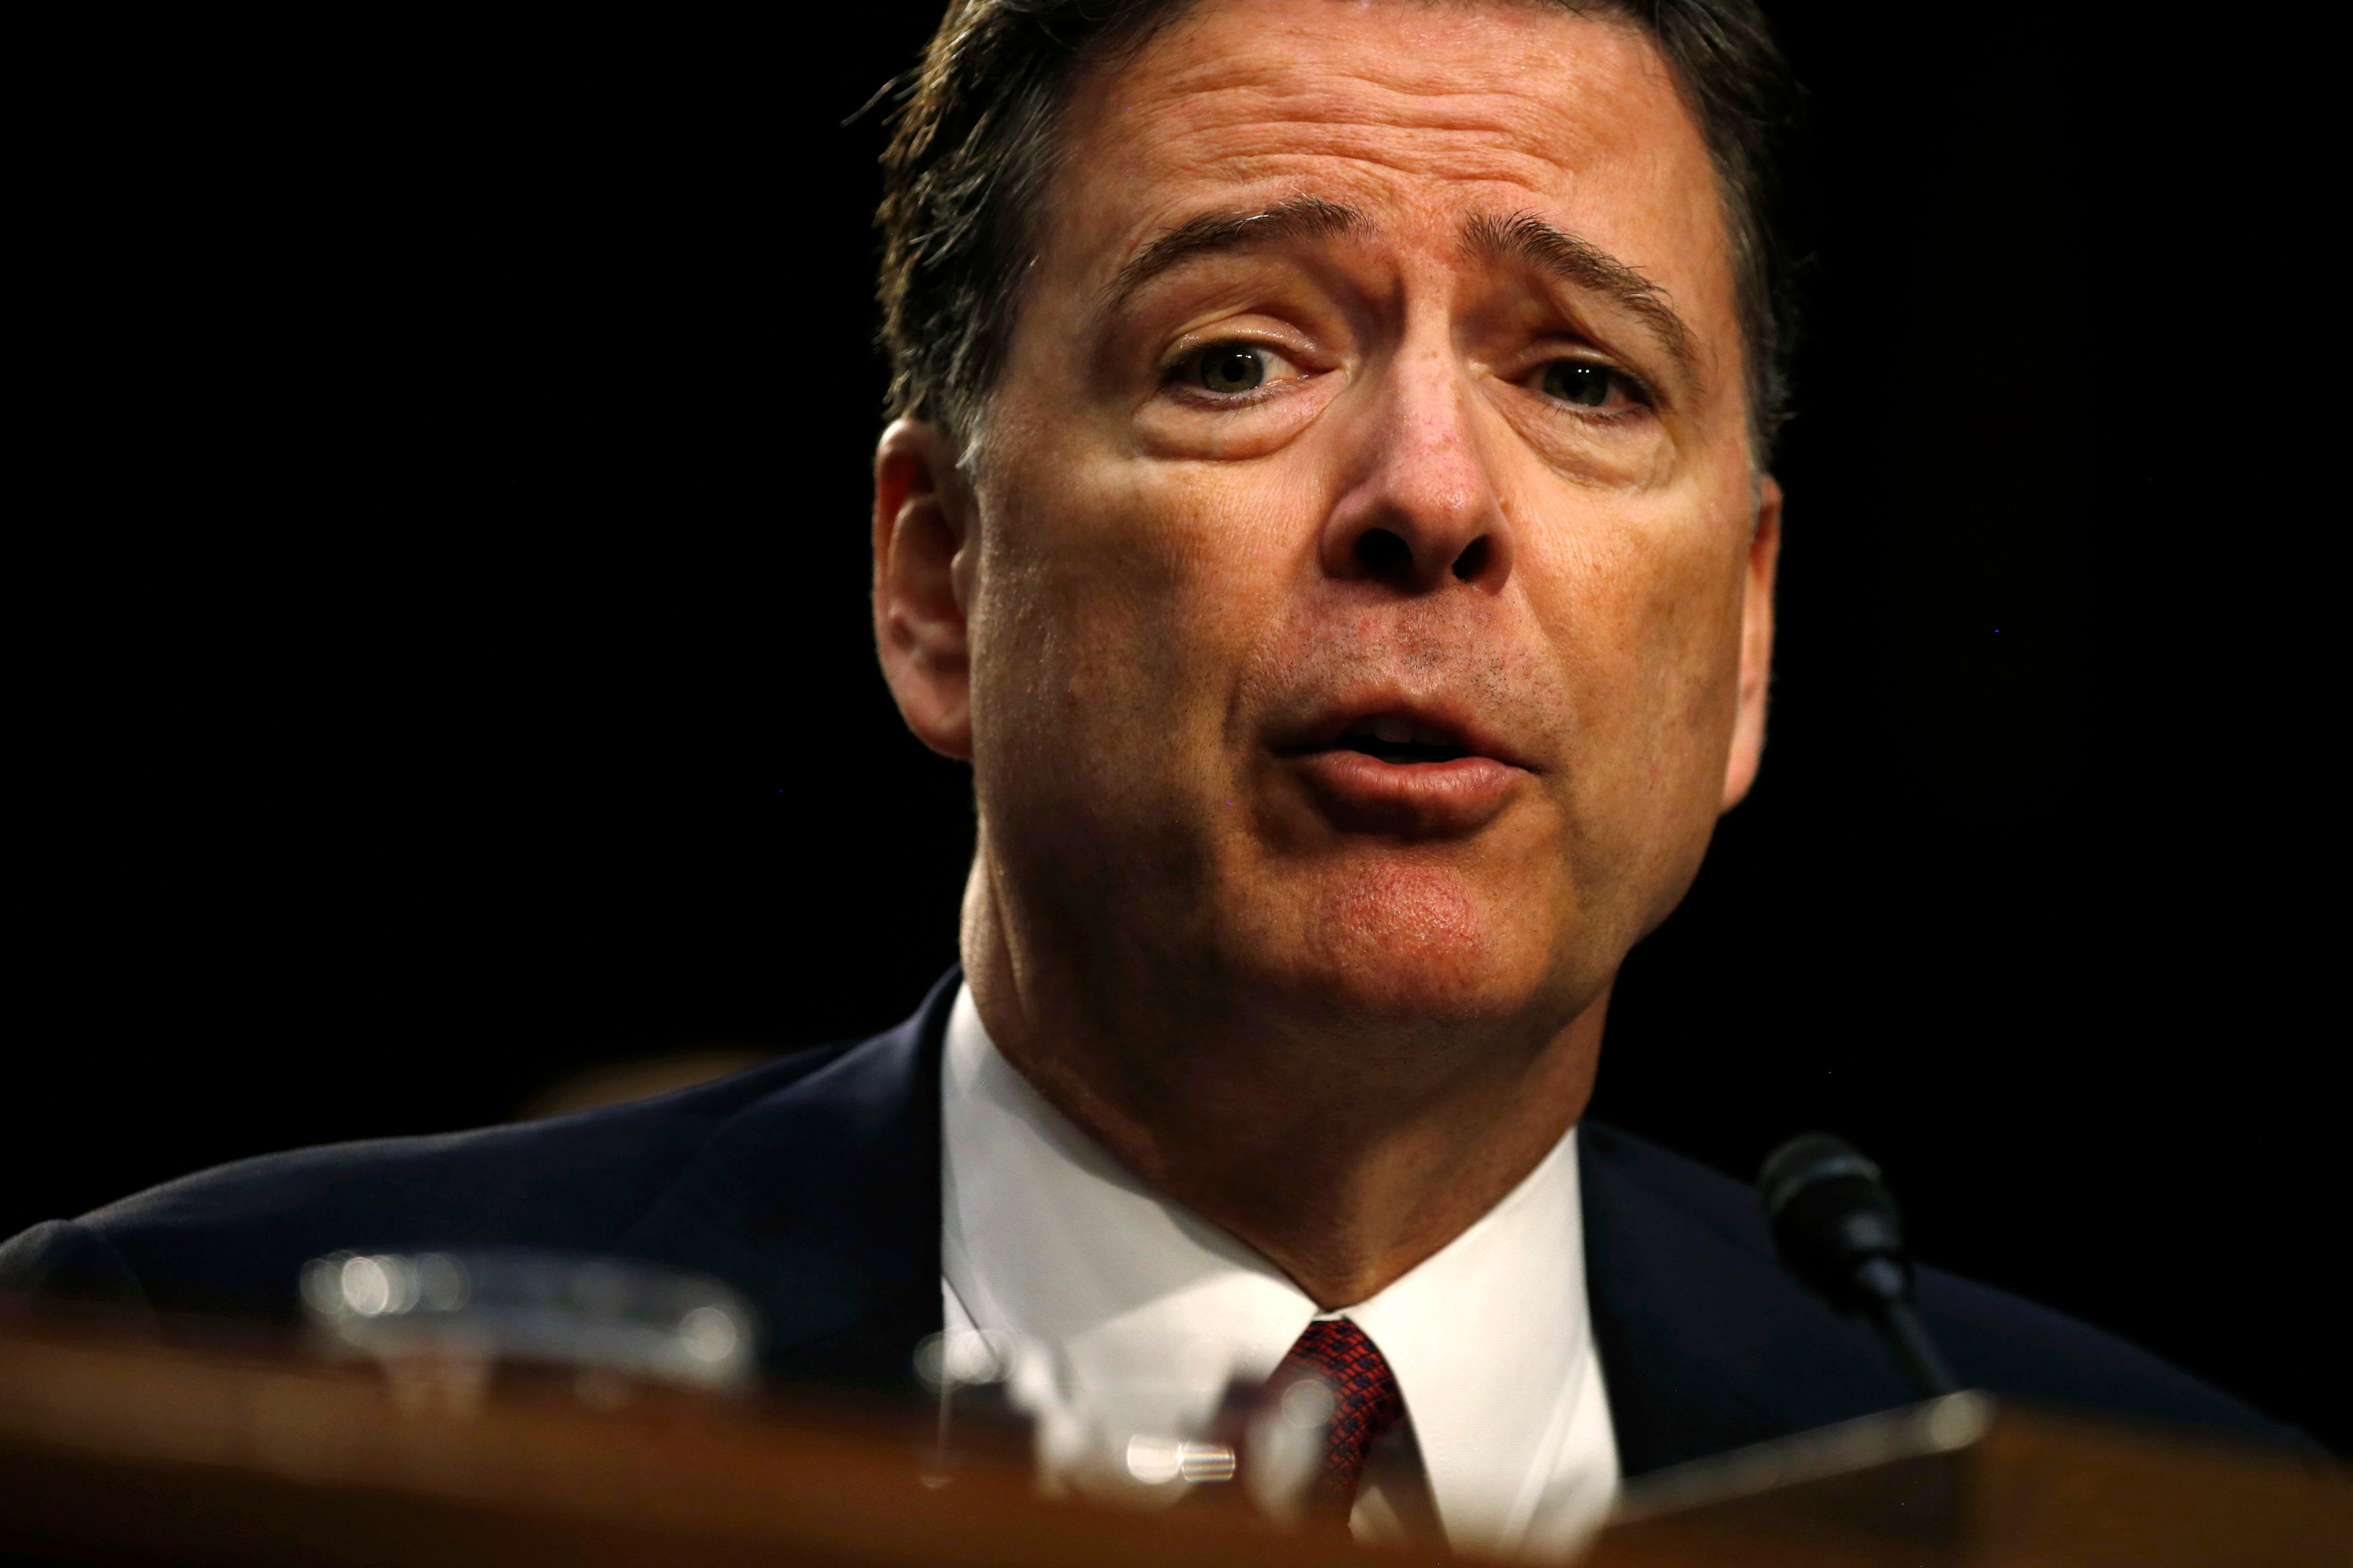 James Comey's Speech Derailed By Protests During Howard University Convocation